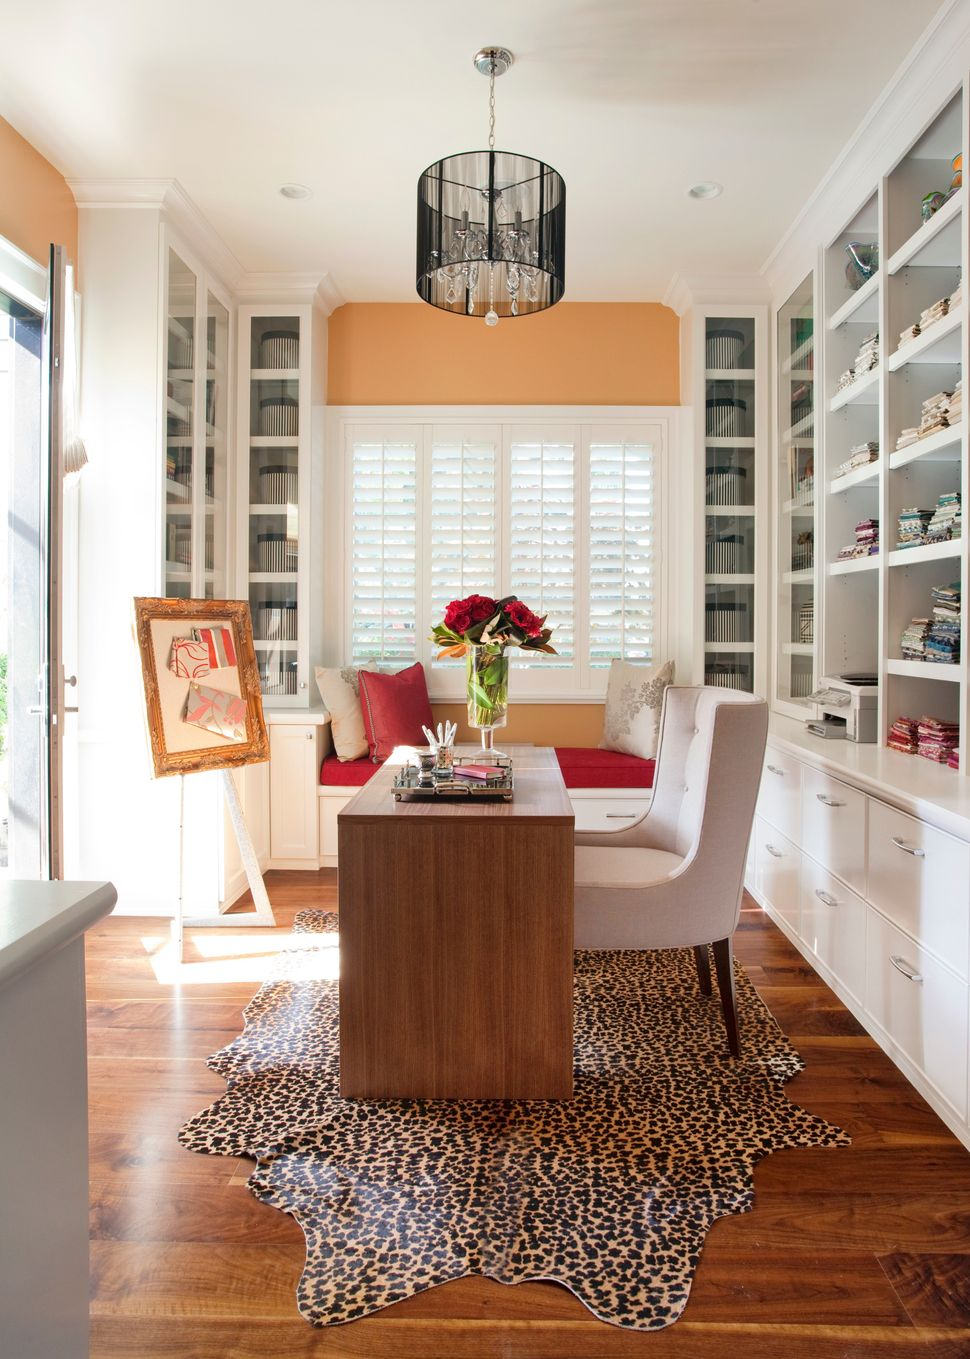 """<a href=""""http://porch.com/projects/los-altos-residence-2?img=49546"""" target=""""_blank"""">Los Altos Residence</a> by Miller Design"""